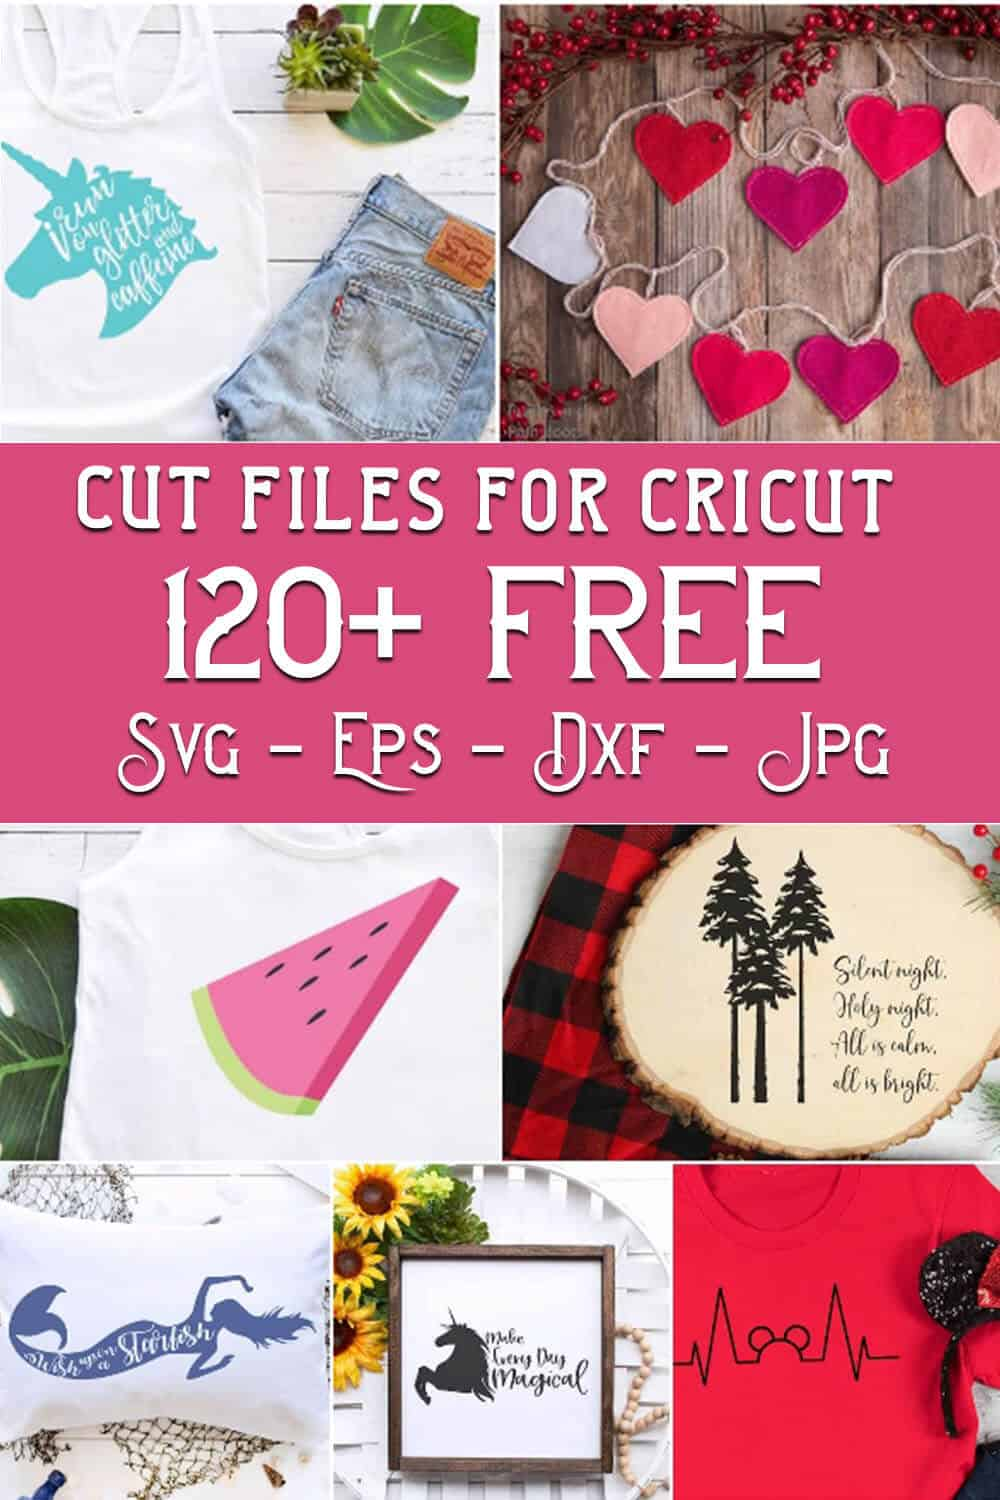 photo collage of free files for cricut or silhouette with text which reads cut files for cricut 120+ free svg eps dxf jpg